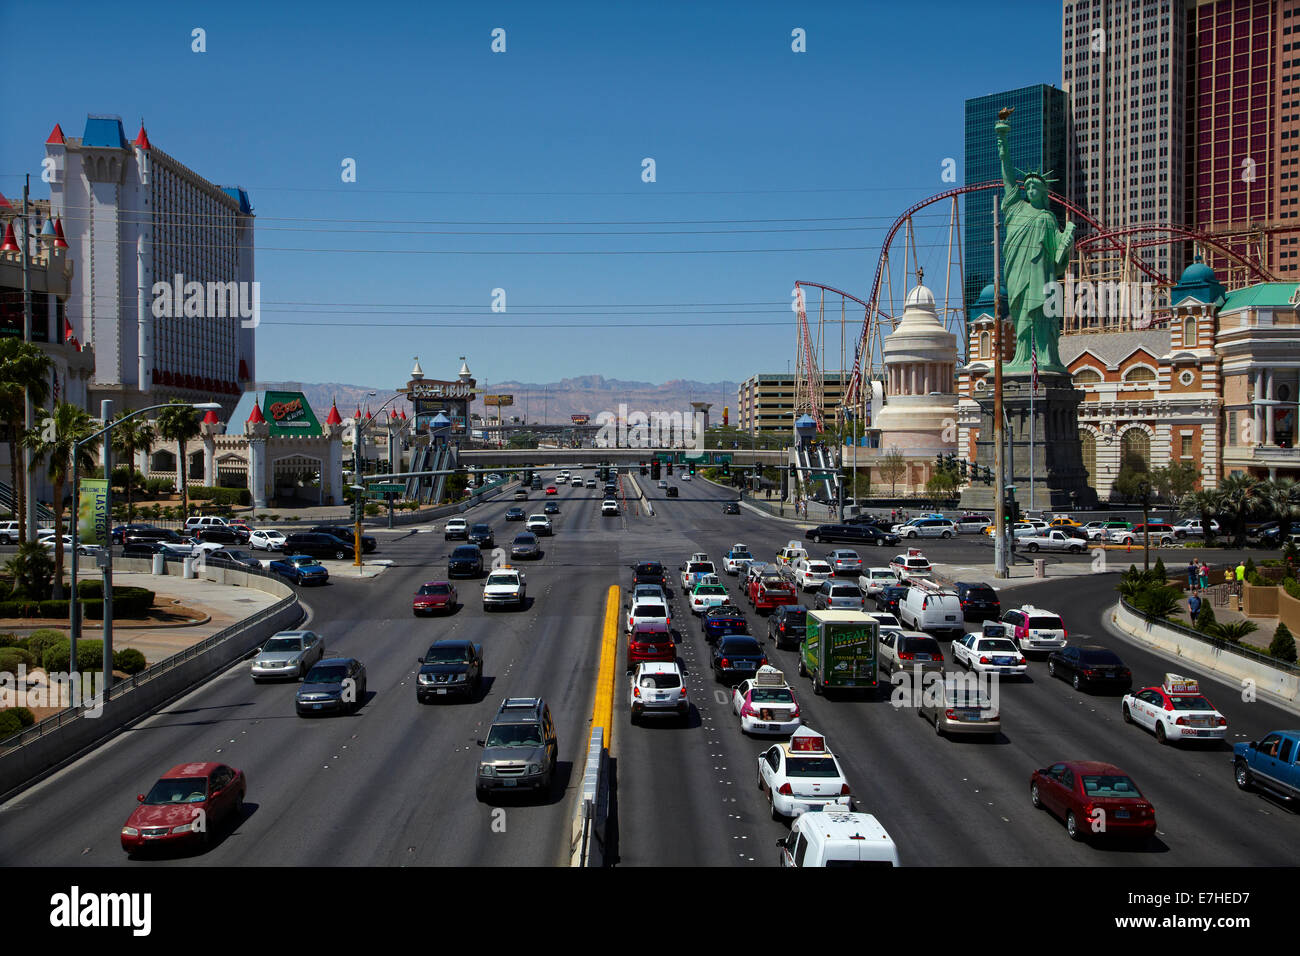 Traffic at the intersection of Tropicana Avenue and Las Vegas Boulevard (The Strip), Las Vegas, Nevada, USA - Stock Image